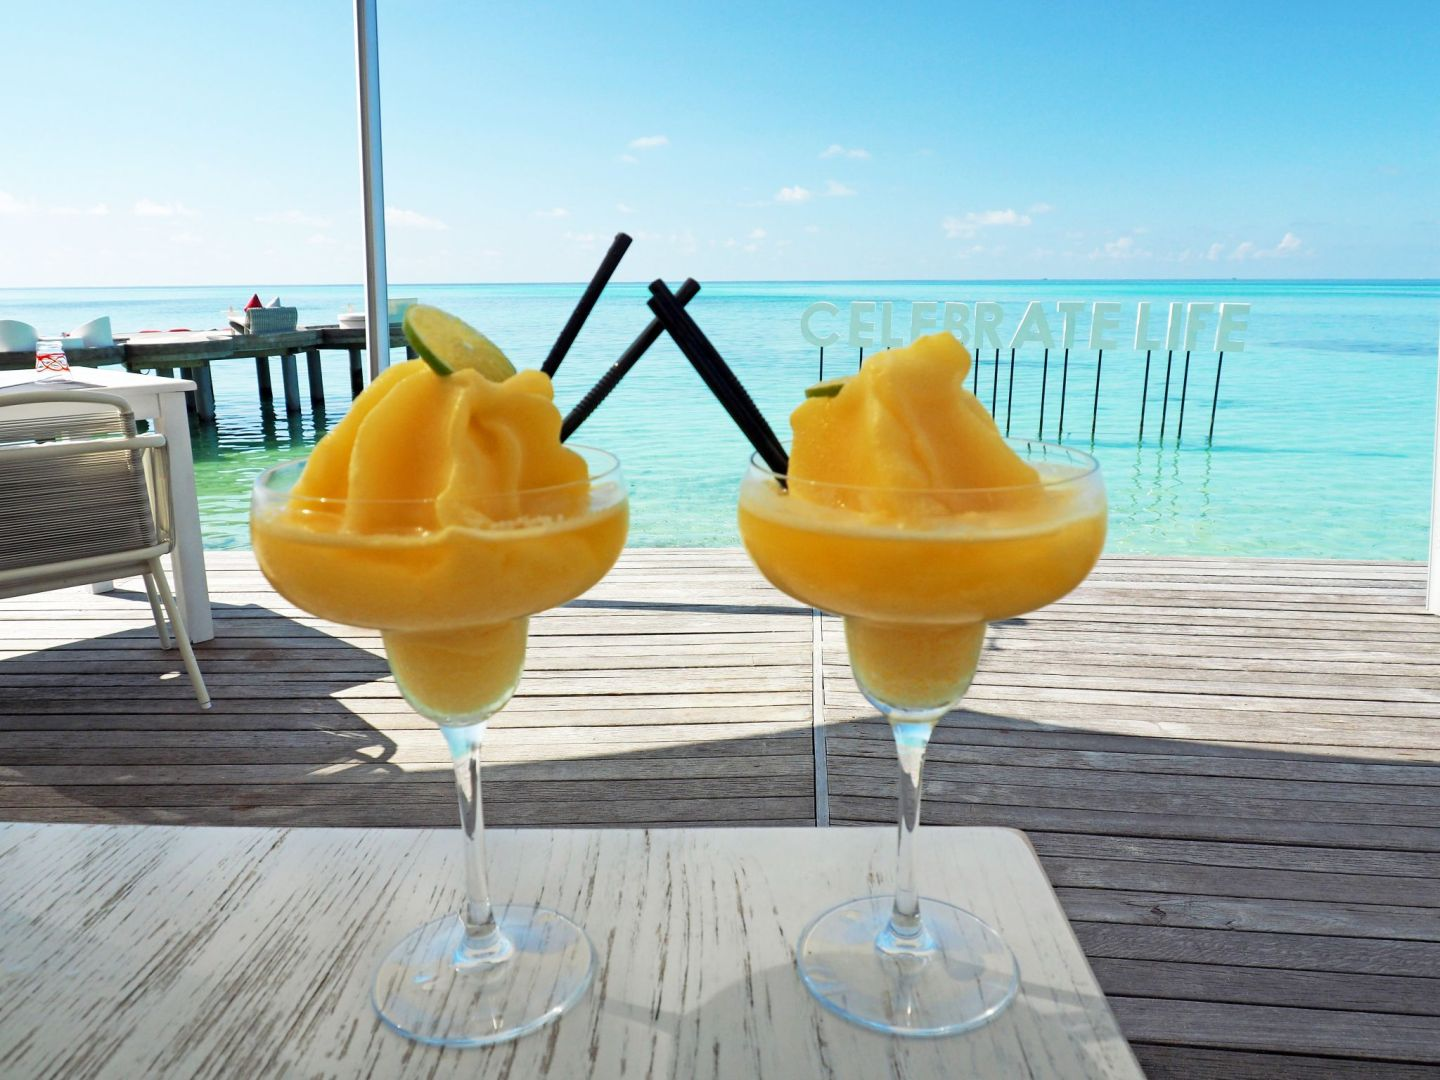 Cocktails at LUX Maldives